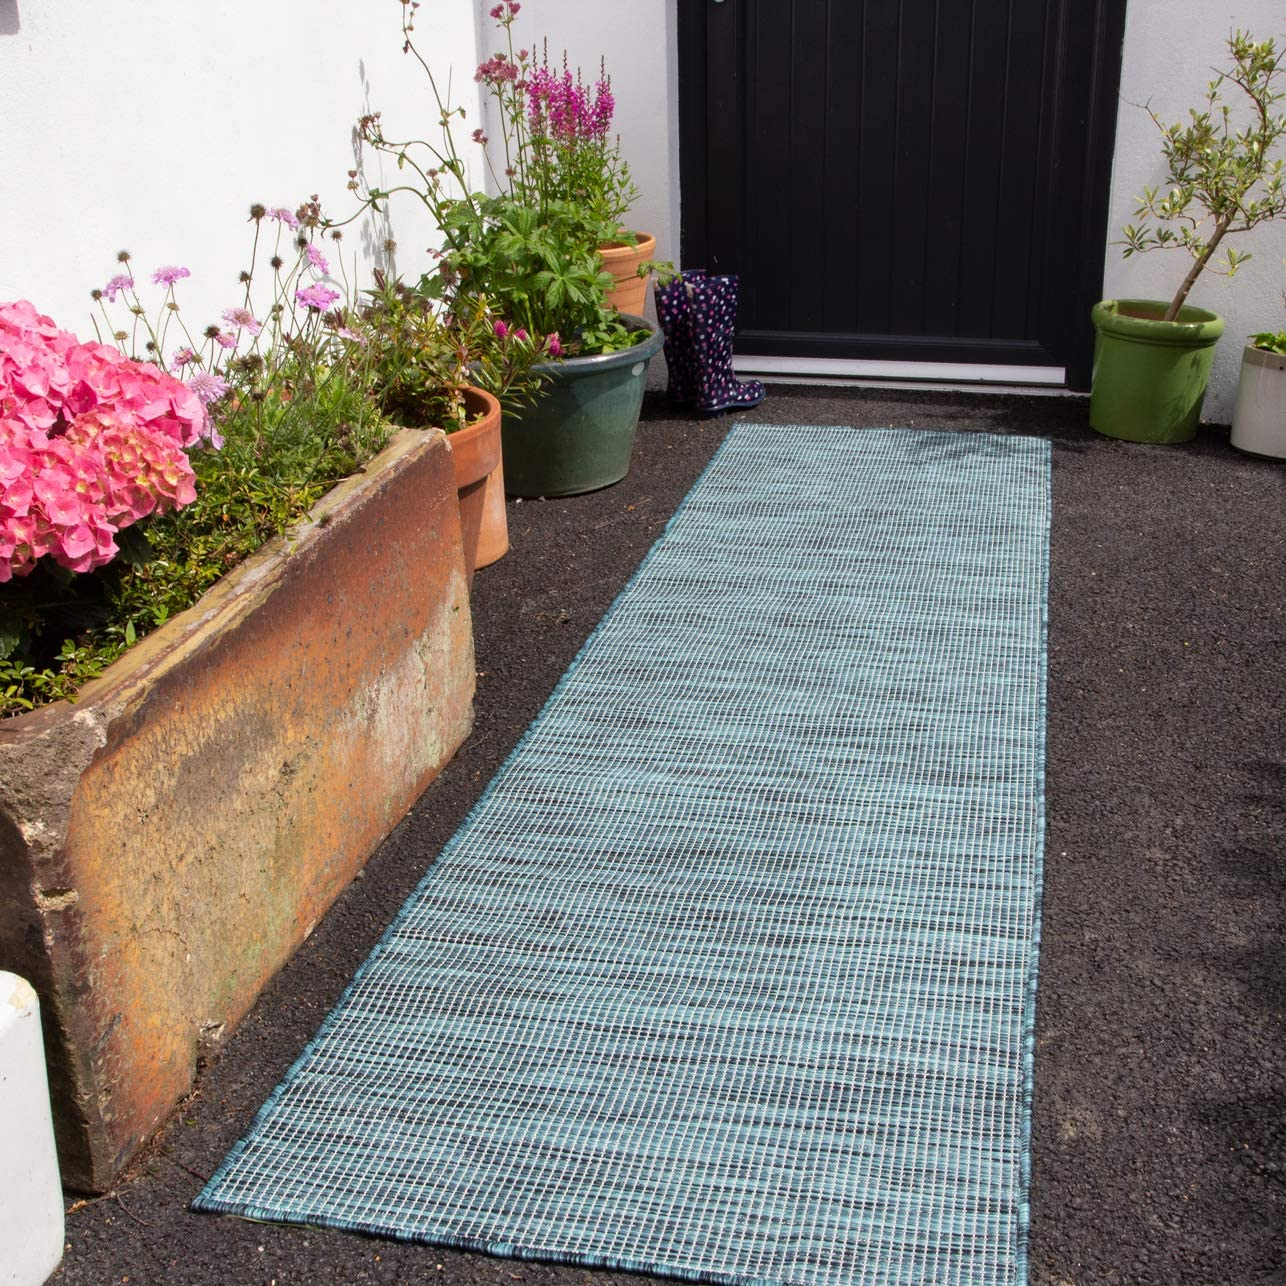 Durable Outdoor Blue Flatweave Patio Rug Plastic Blue Textured Garden Weather Resistent Picnic Area Rugs 68cm X 240cm Amazon Co Uk Kitchen Home